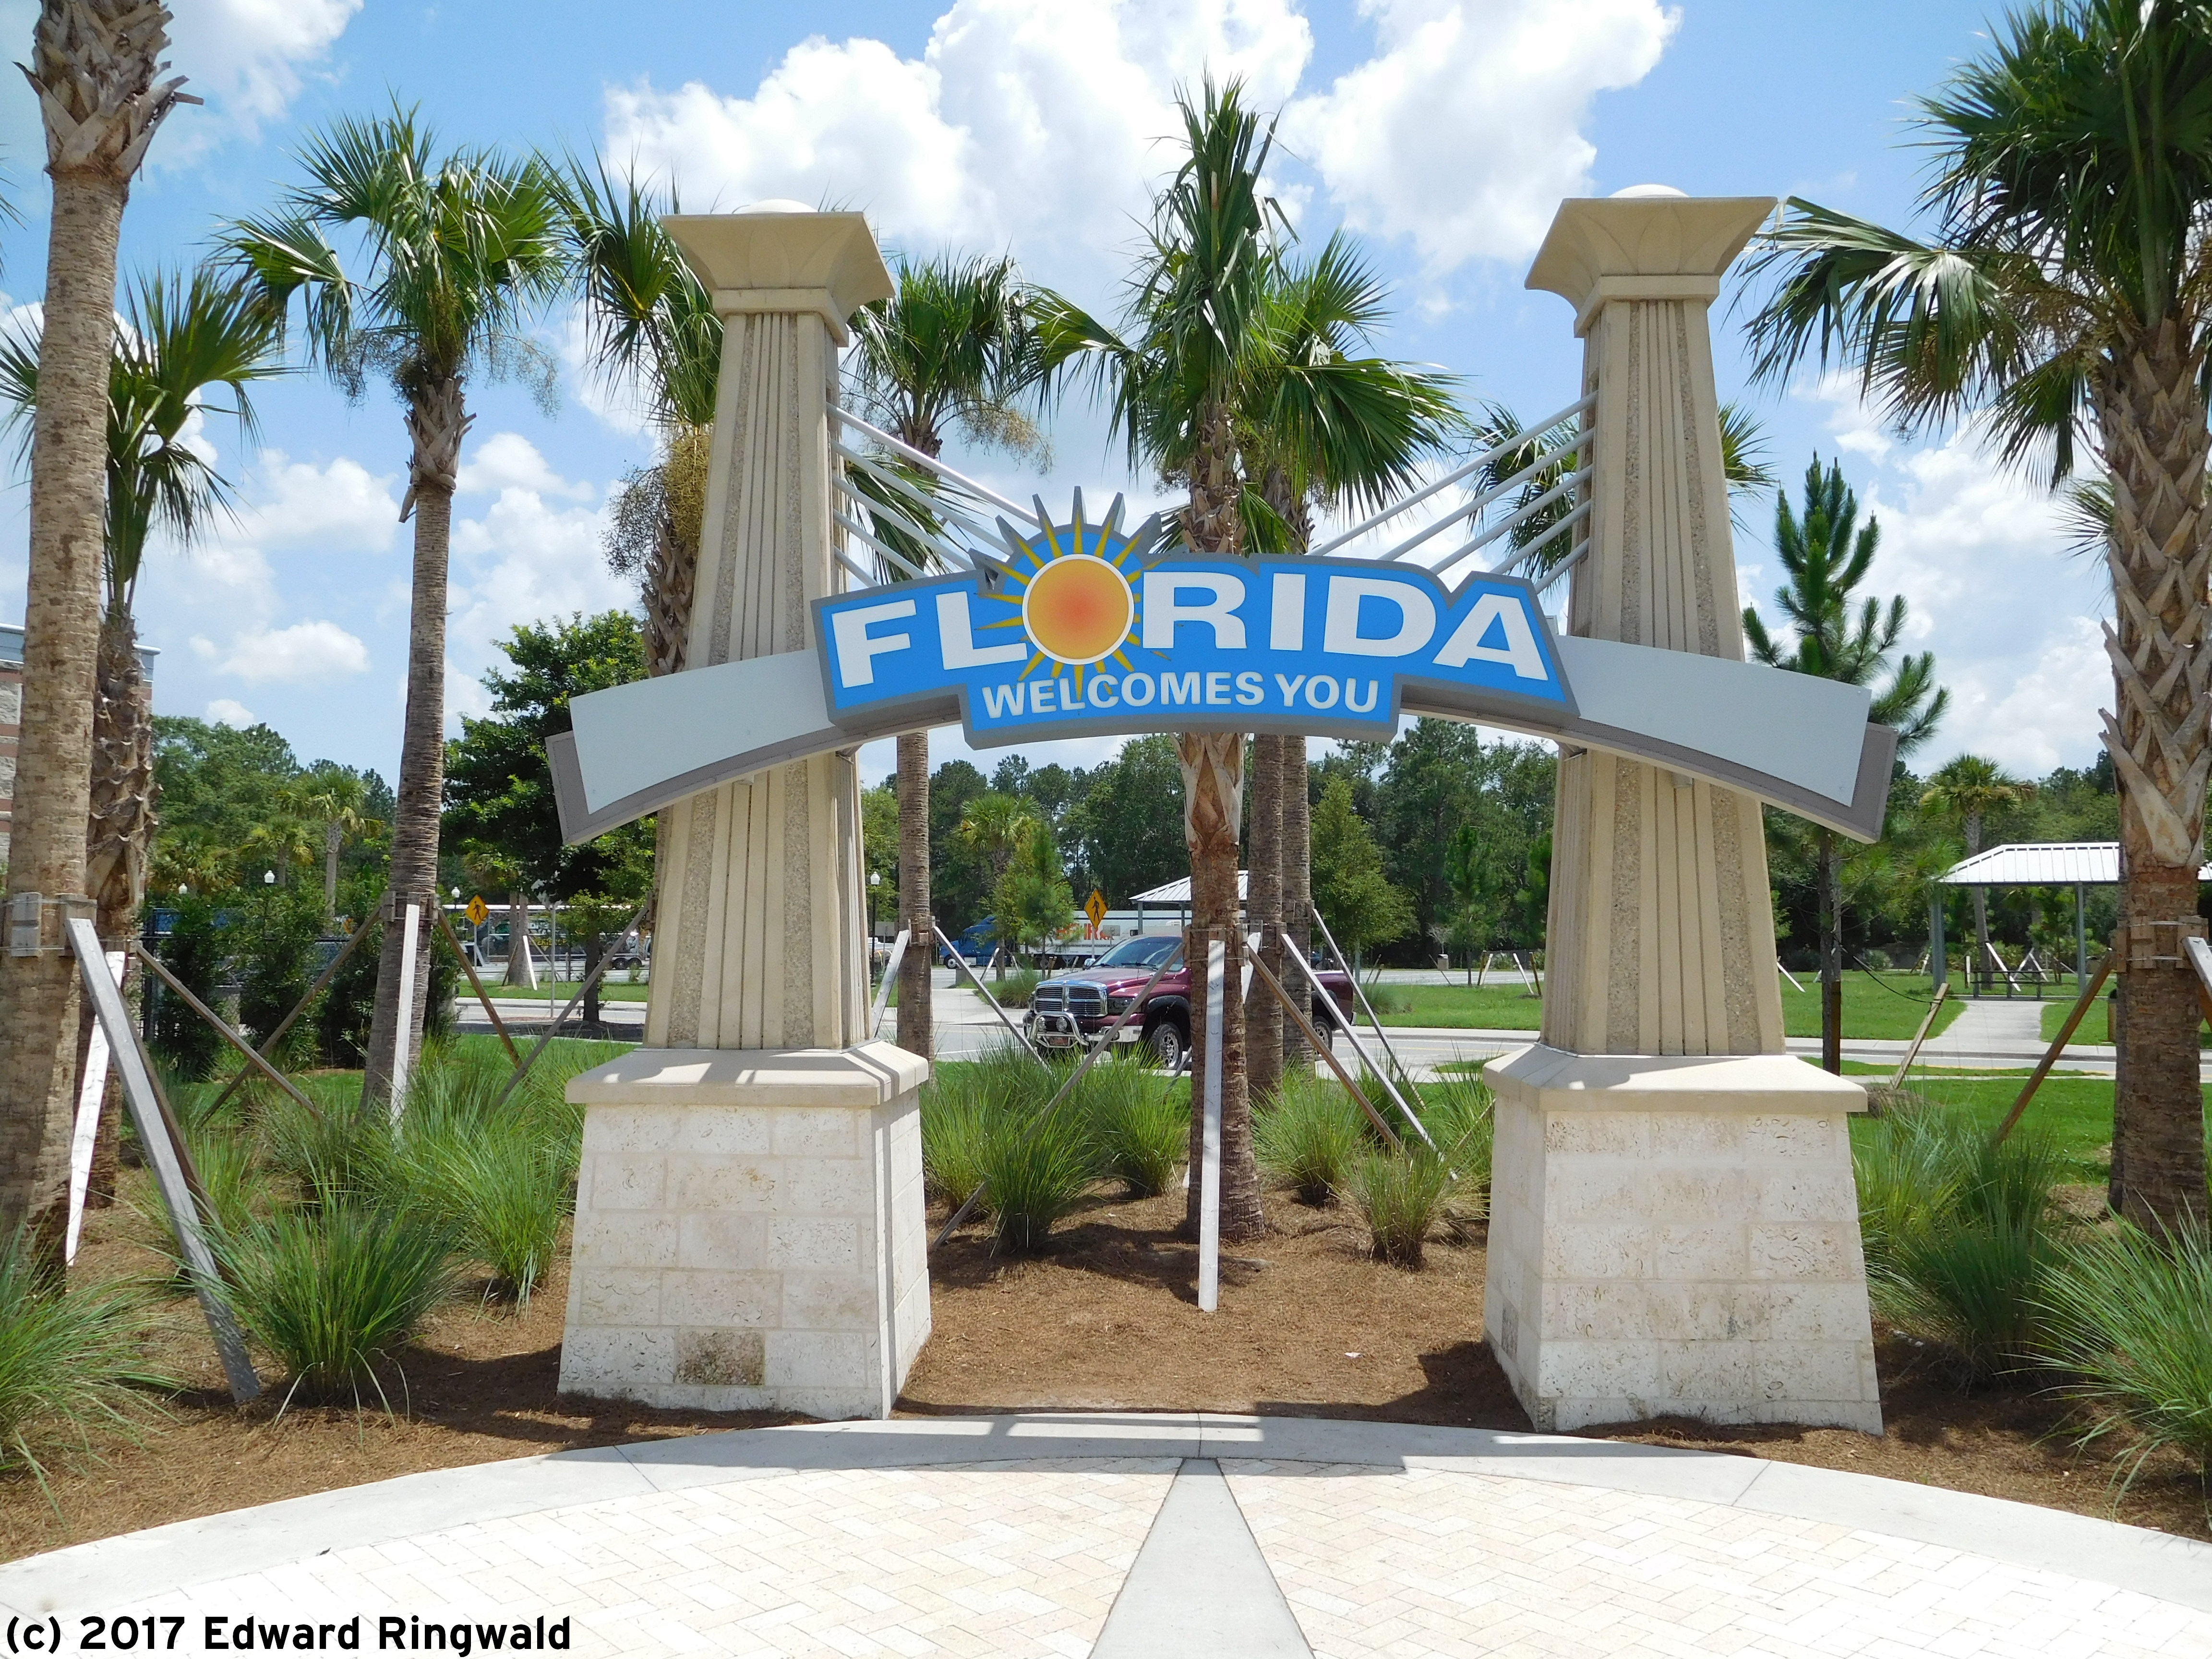 What You Need To Know About The Florida Welcome Center